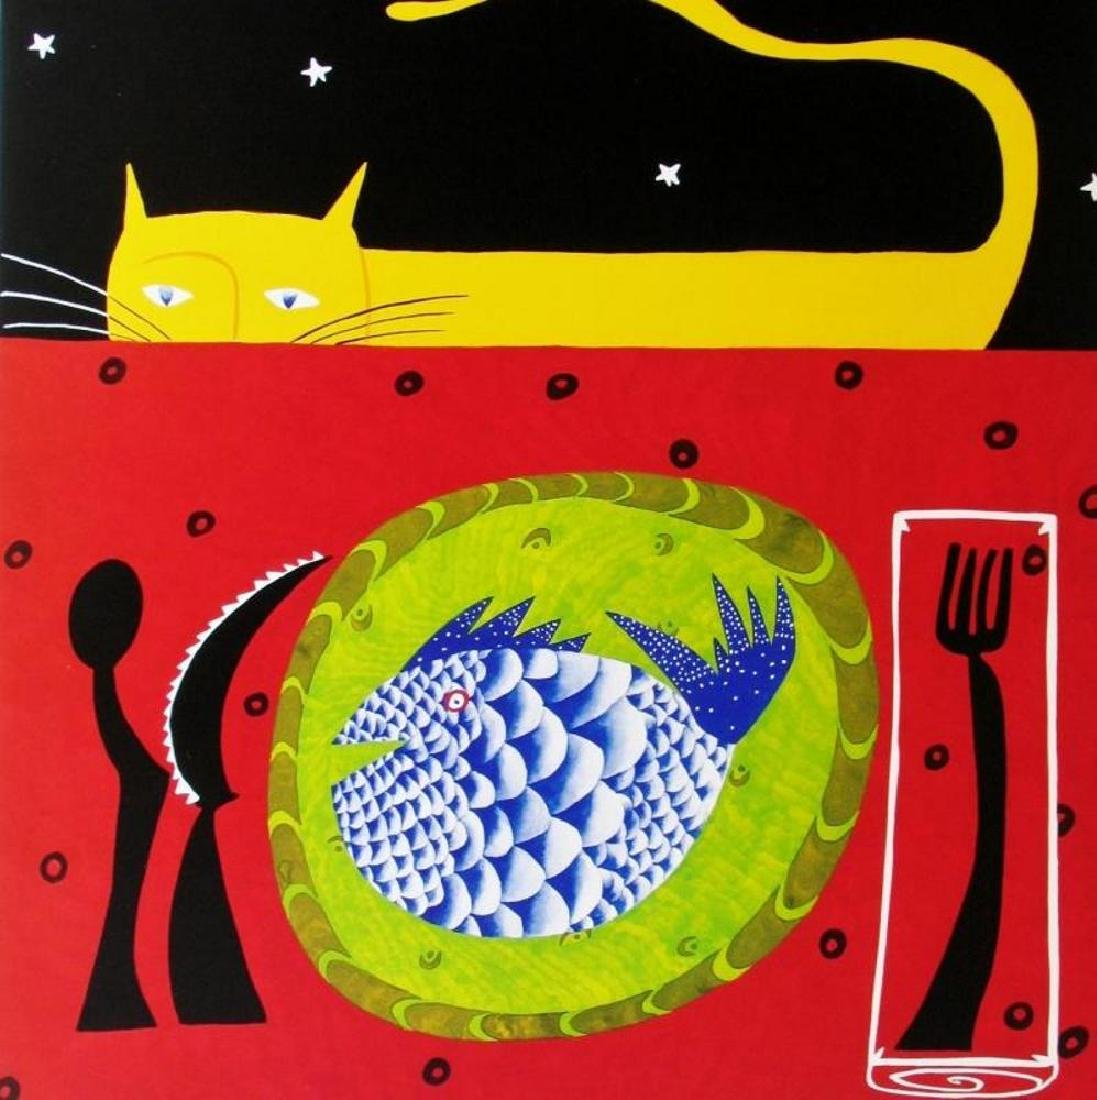 1998 See Food Platter Hubbard Abstract Pop Whimsical - 2